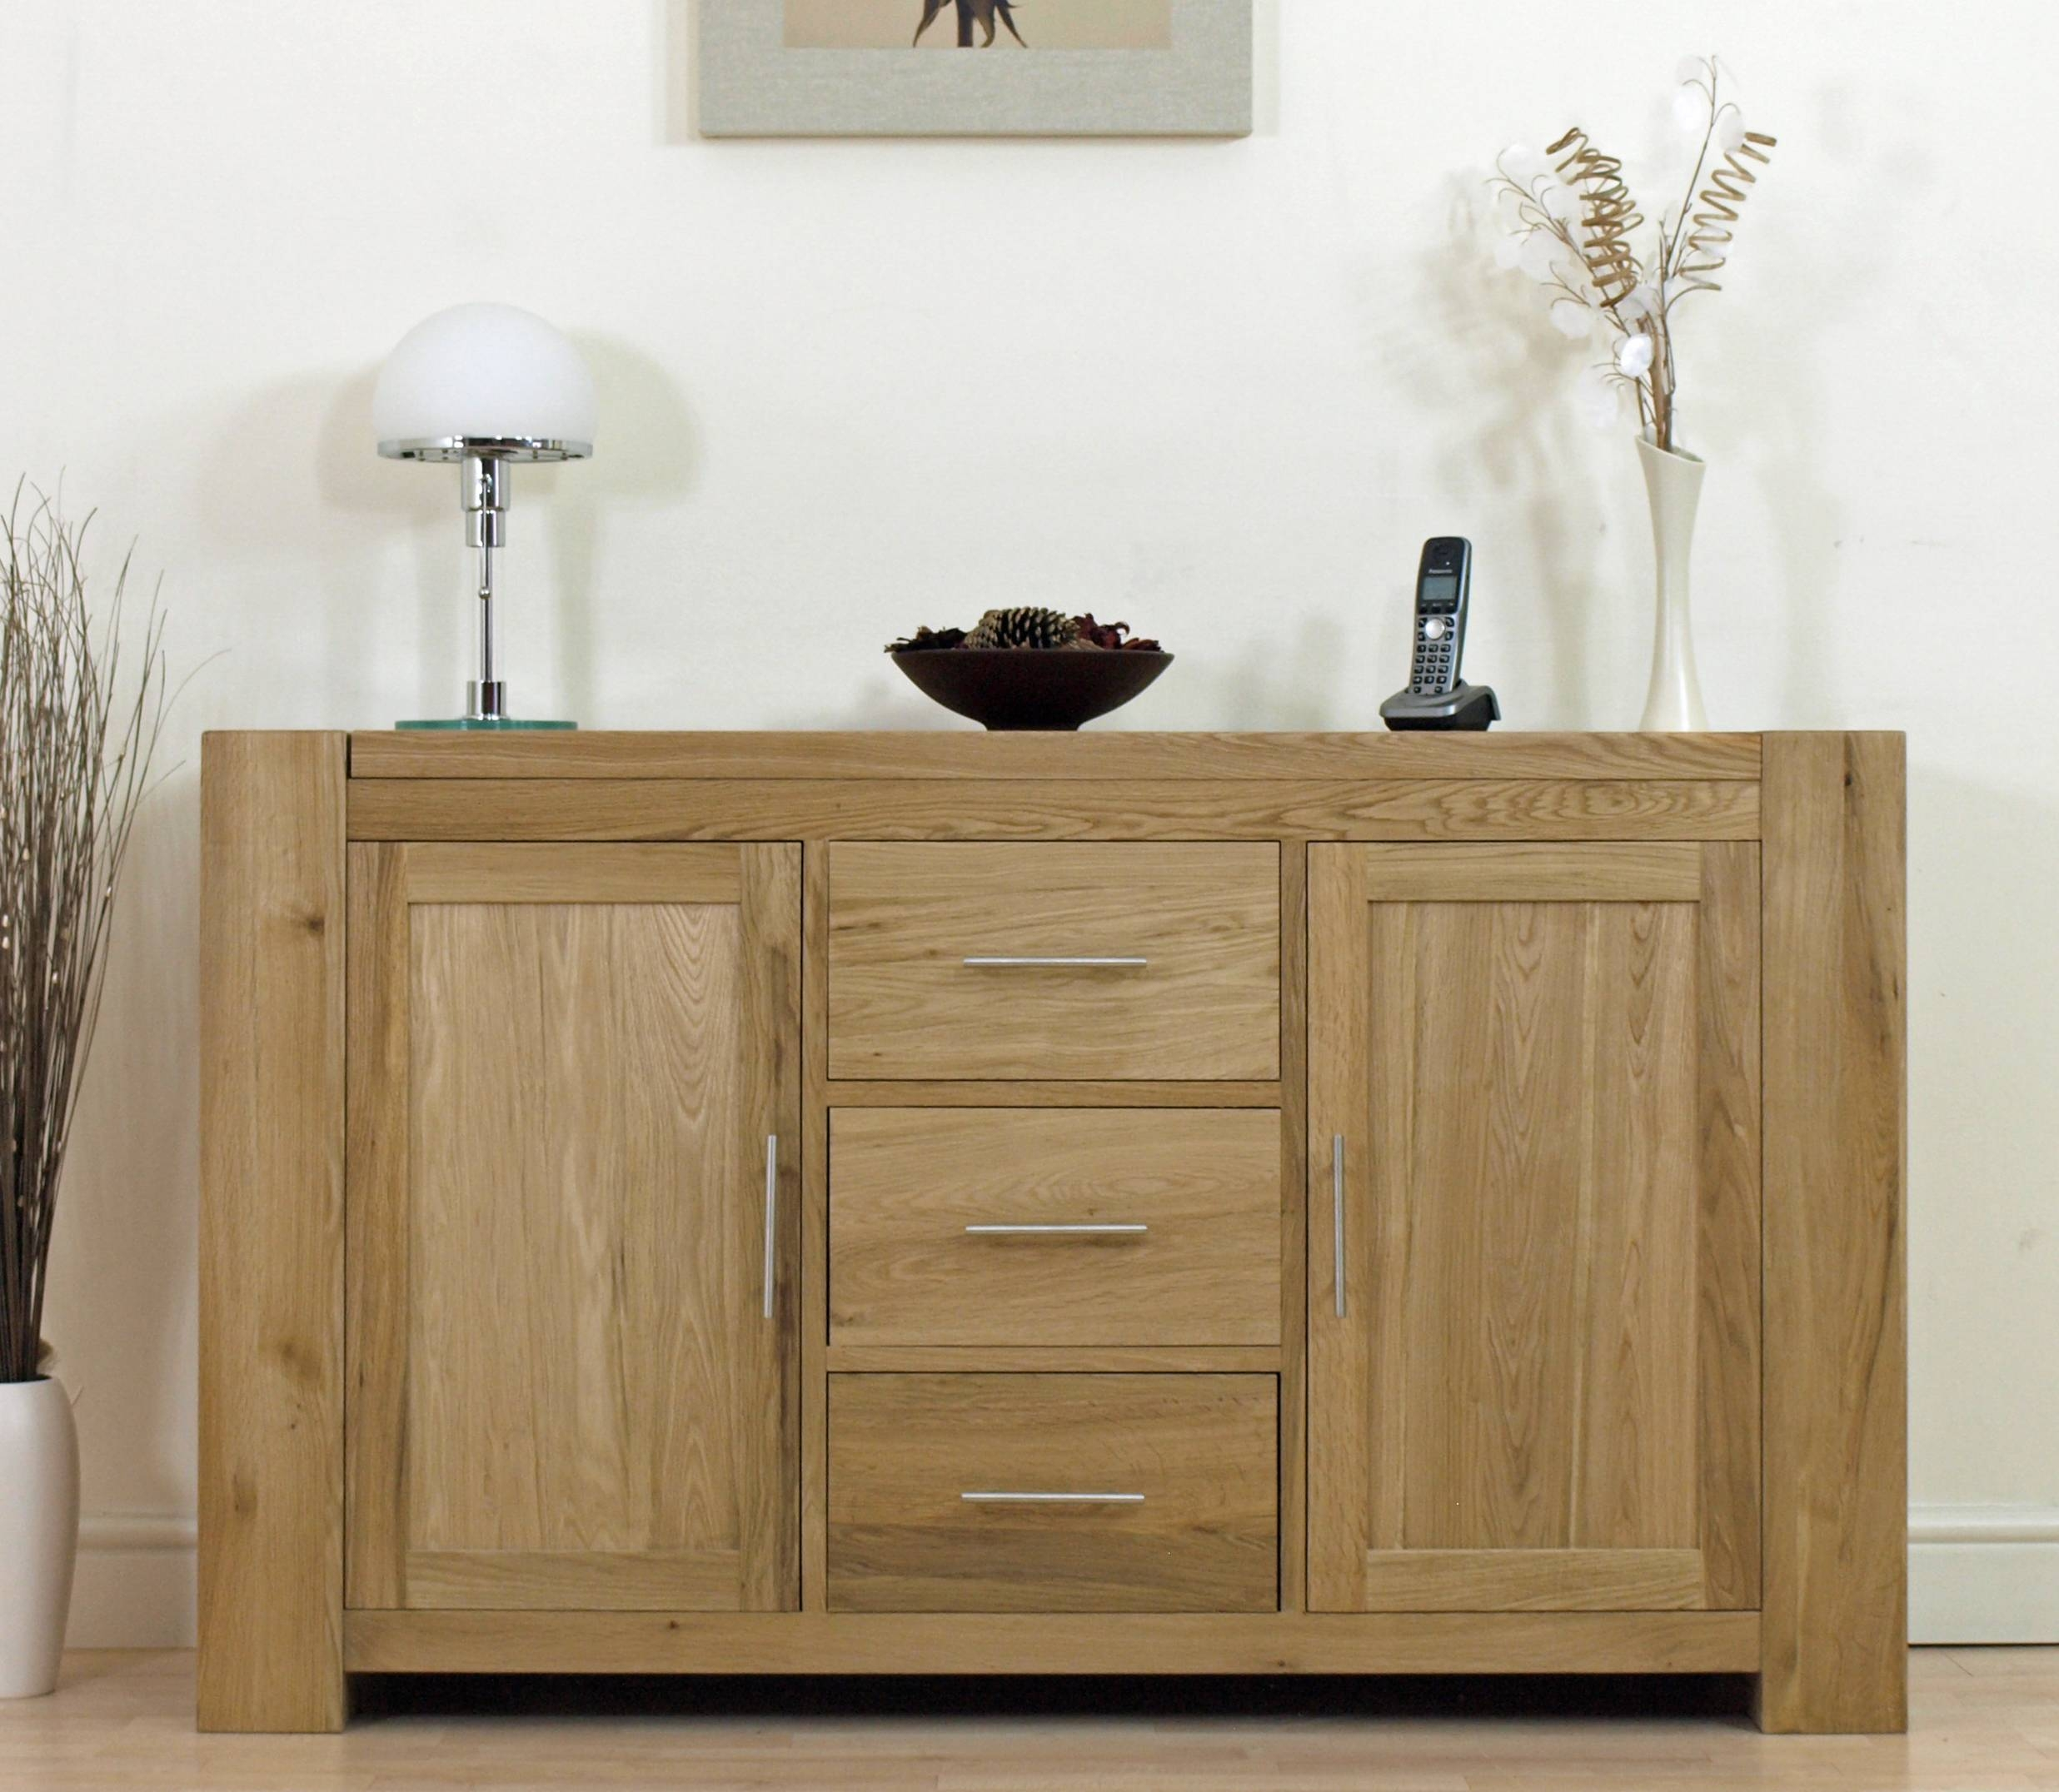 Solid Oak Sideboard Is Your First Choice Living Room Furniture – Hgnv Within Latest Extra Large Oak Sideboards (View 15 of 15)